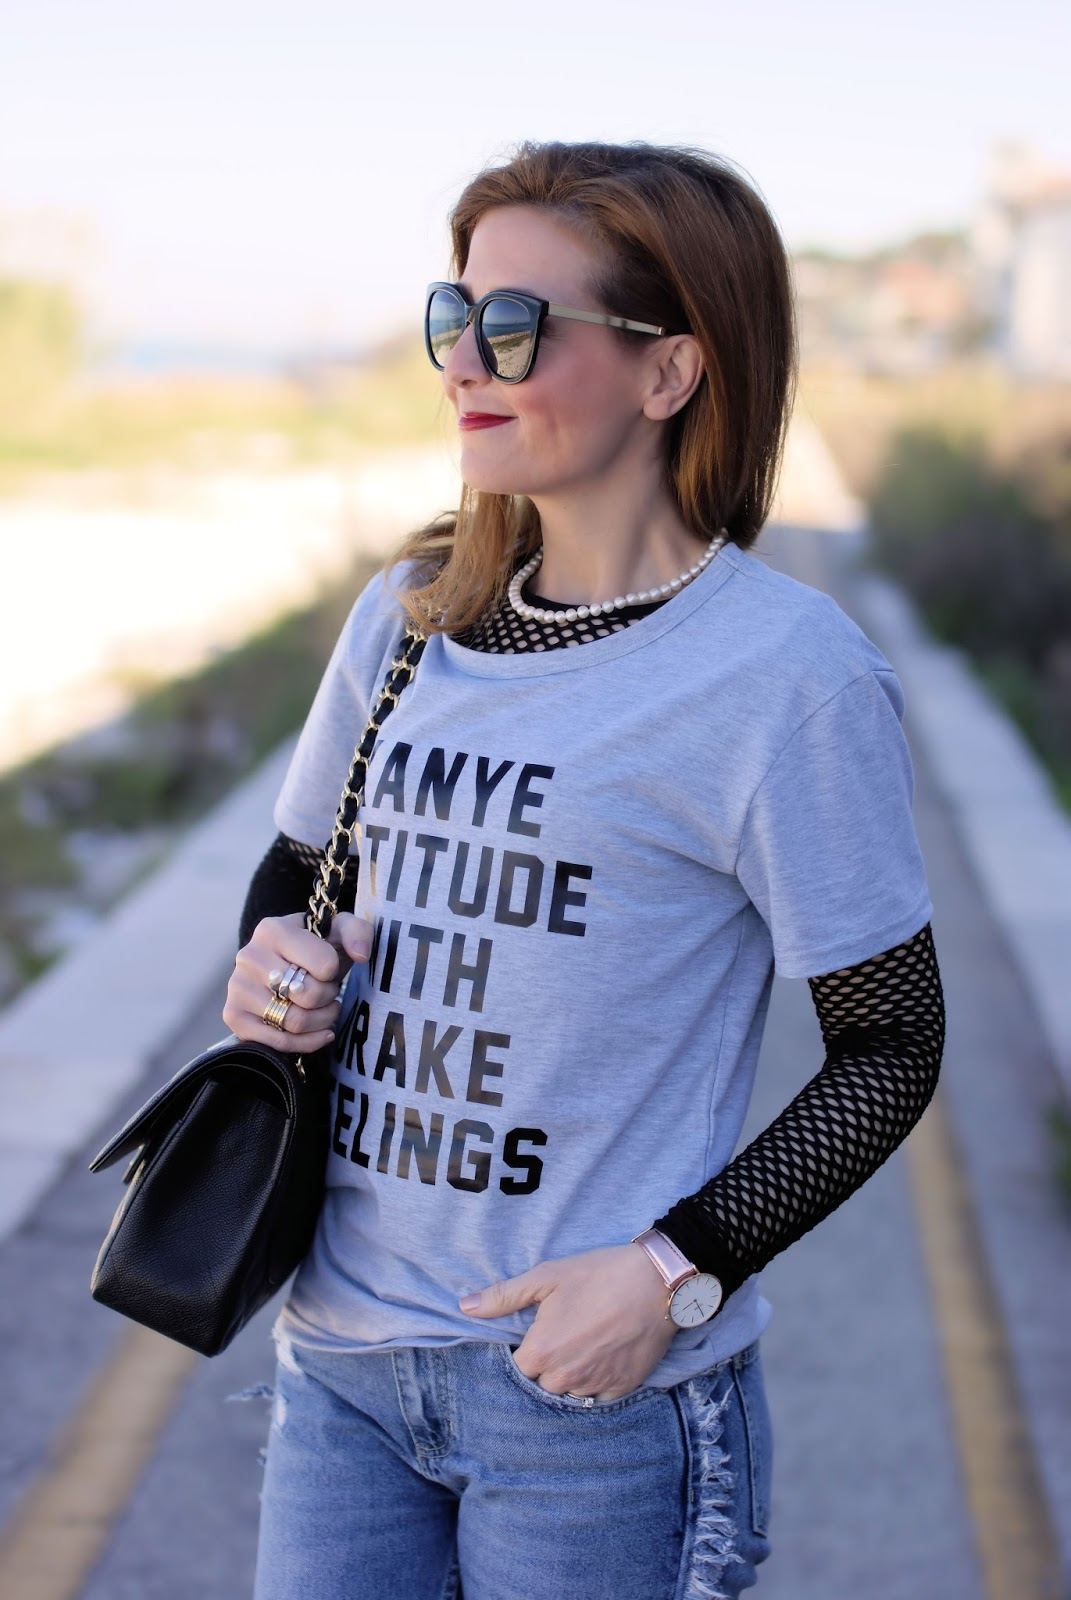 Kanye attitude with Drake feelings Sammydress tshirt on Fashion and Cookies fashion blog, fashion blogger style